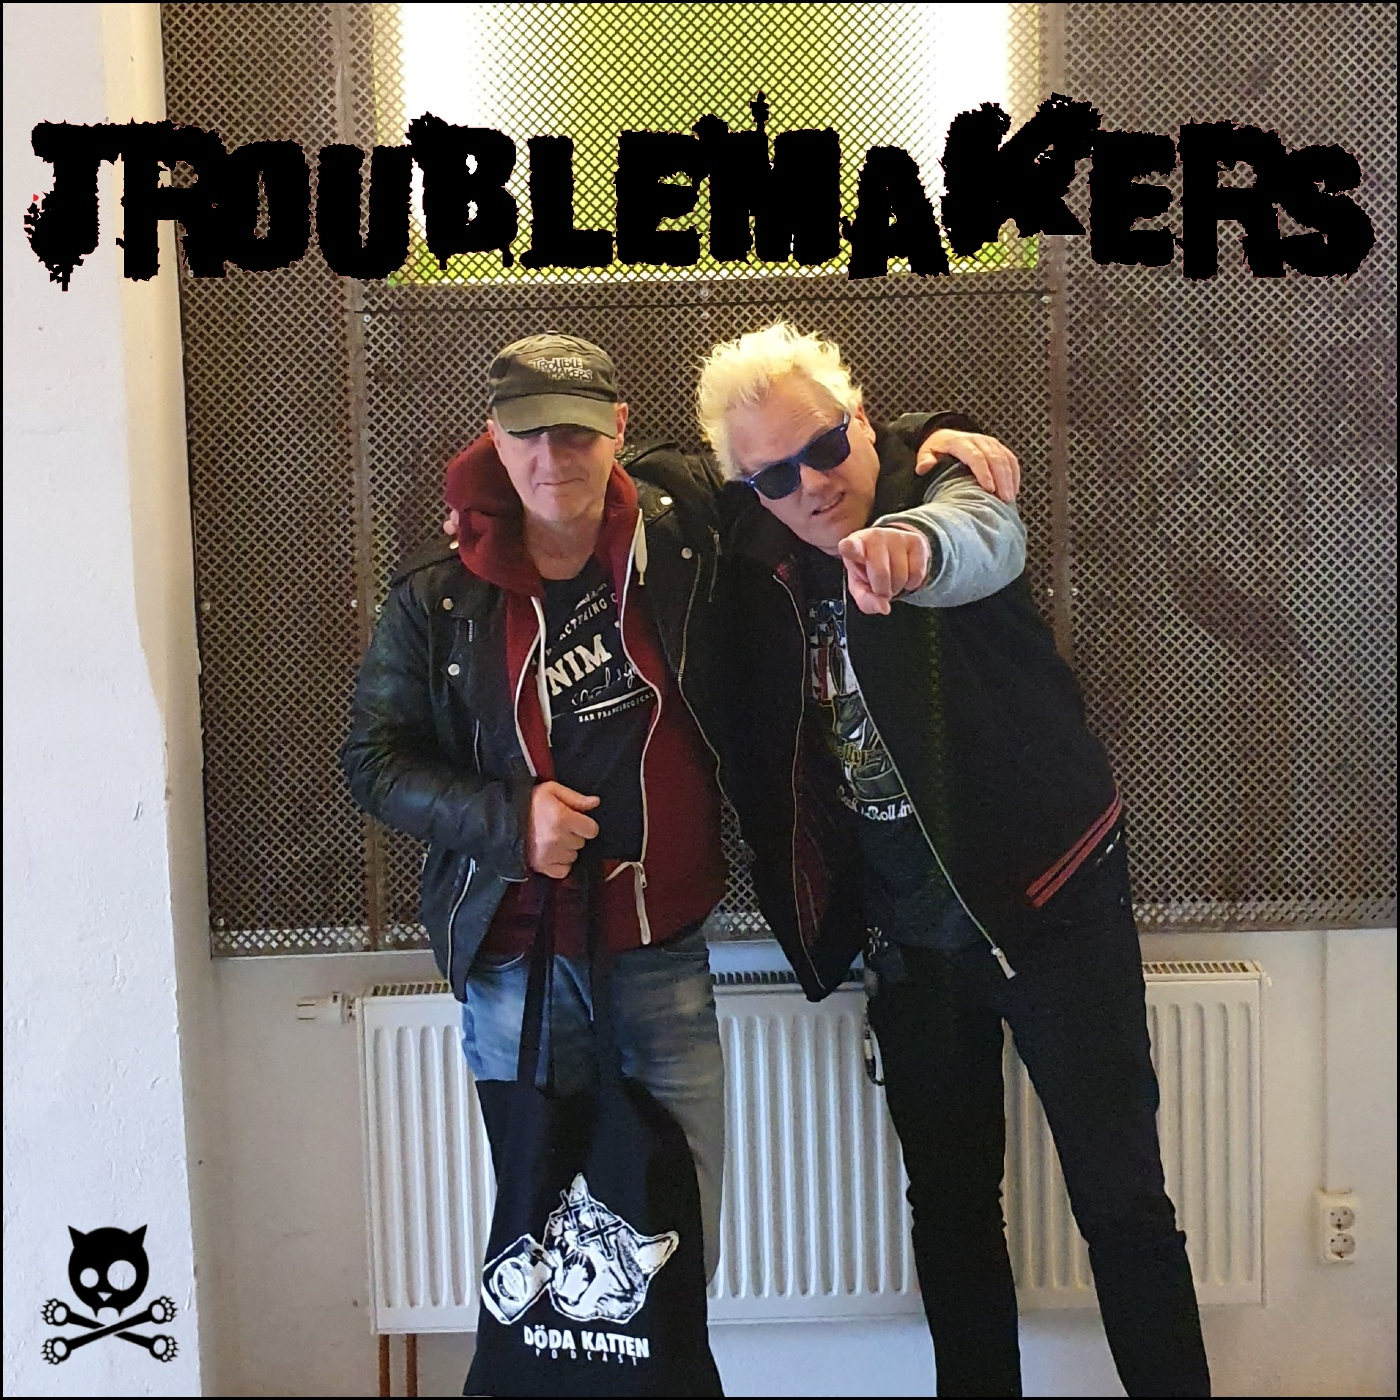 124. Troublemakers